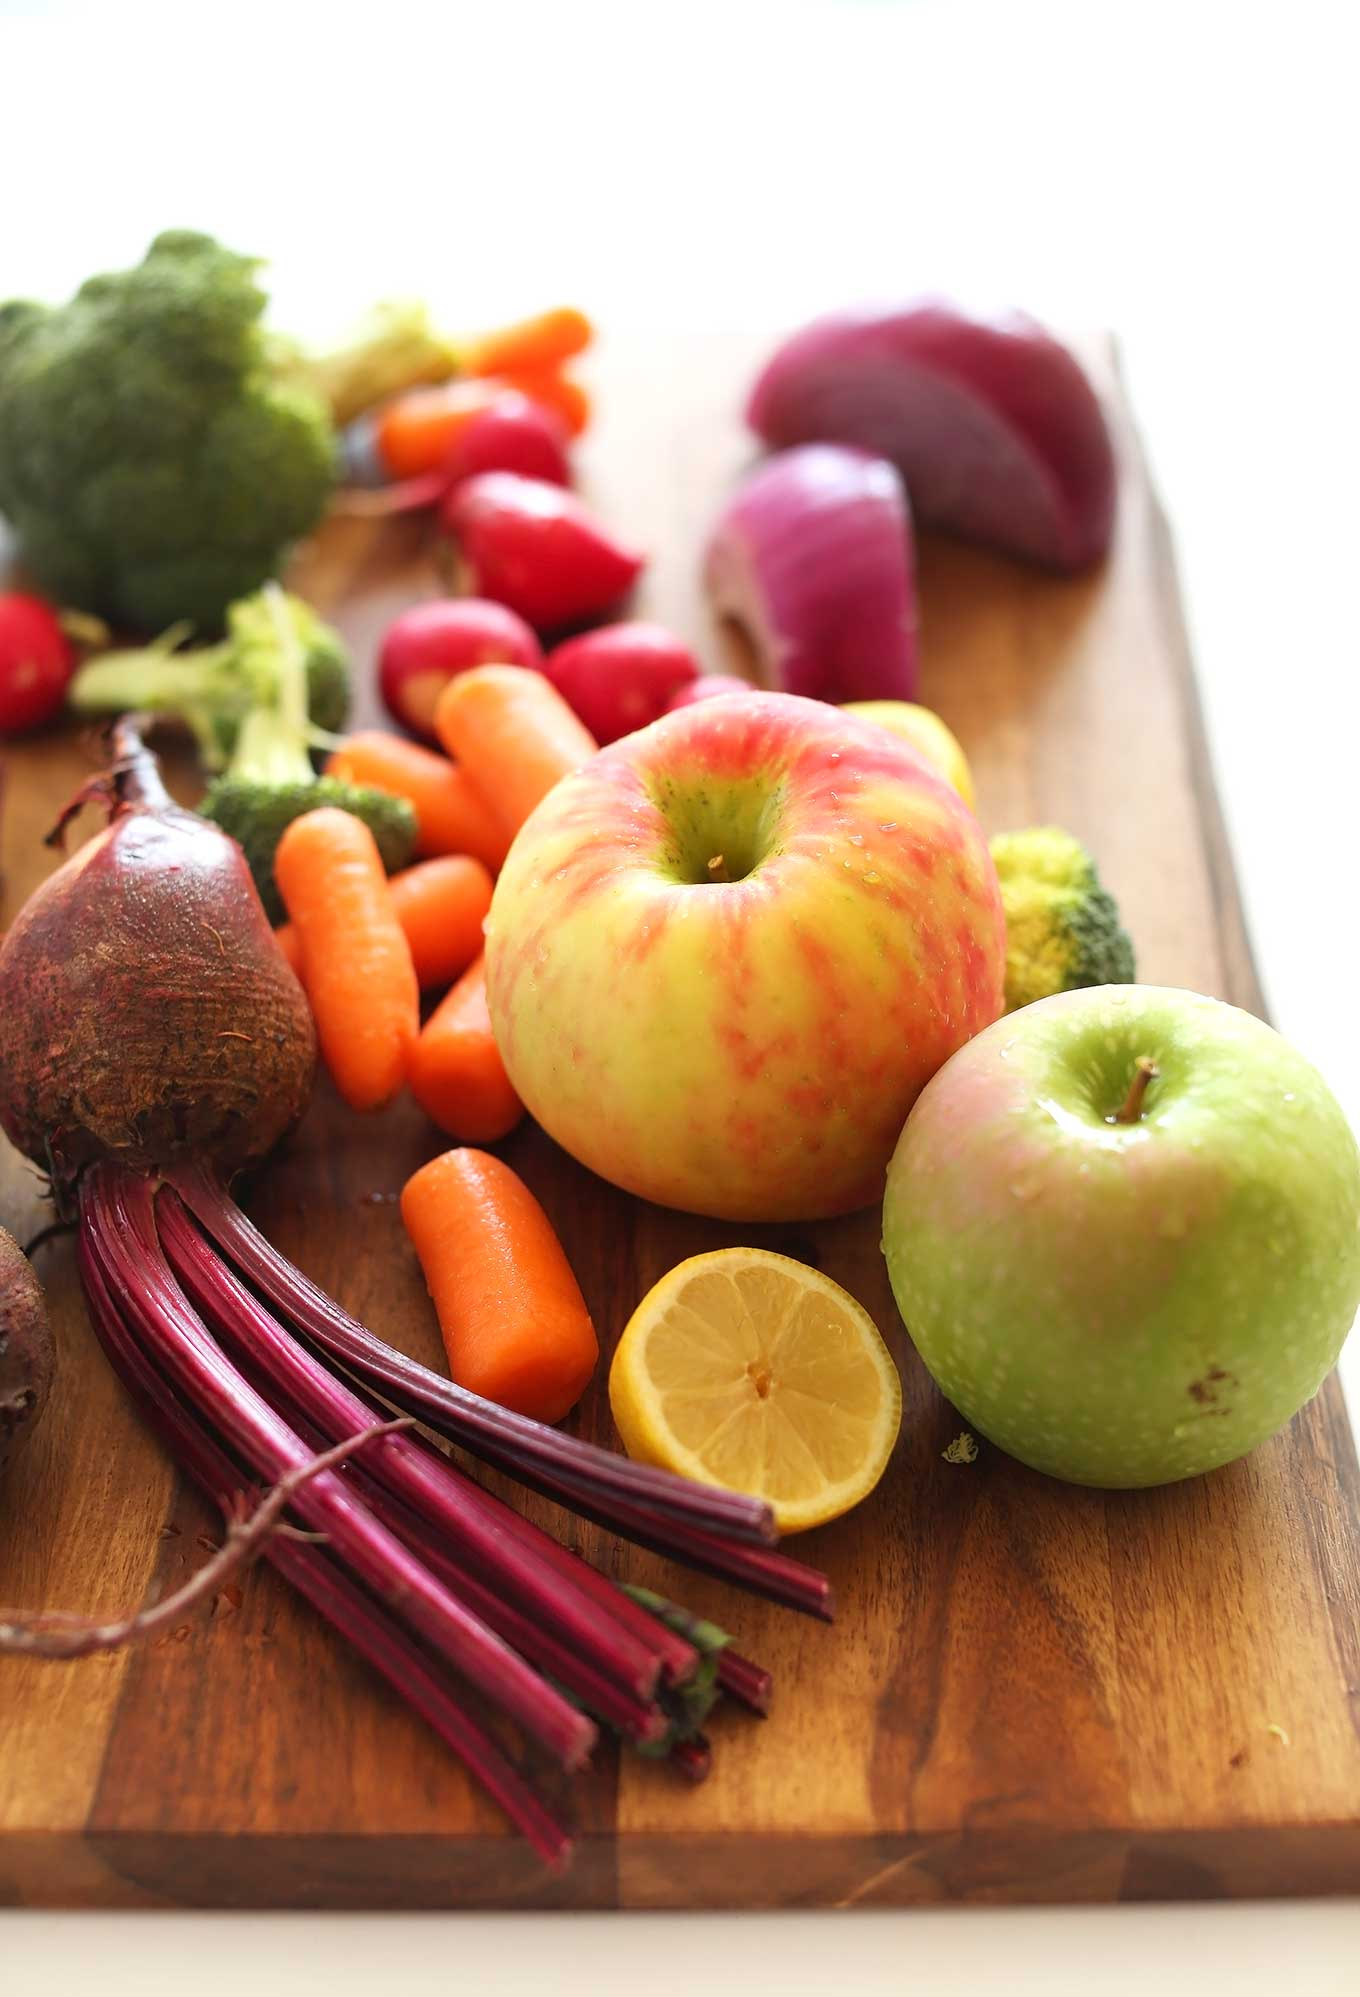 Fresh apples, carrots, beets, broccoli, radish, onions, and lemon for making a healthy fall slaw